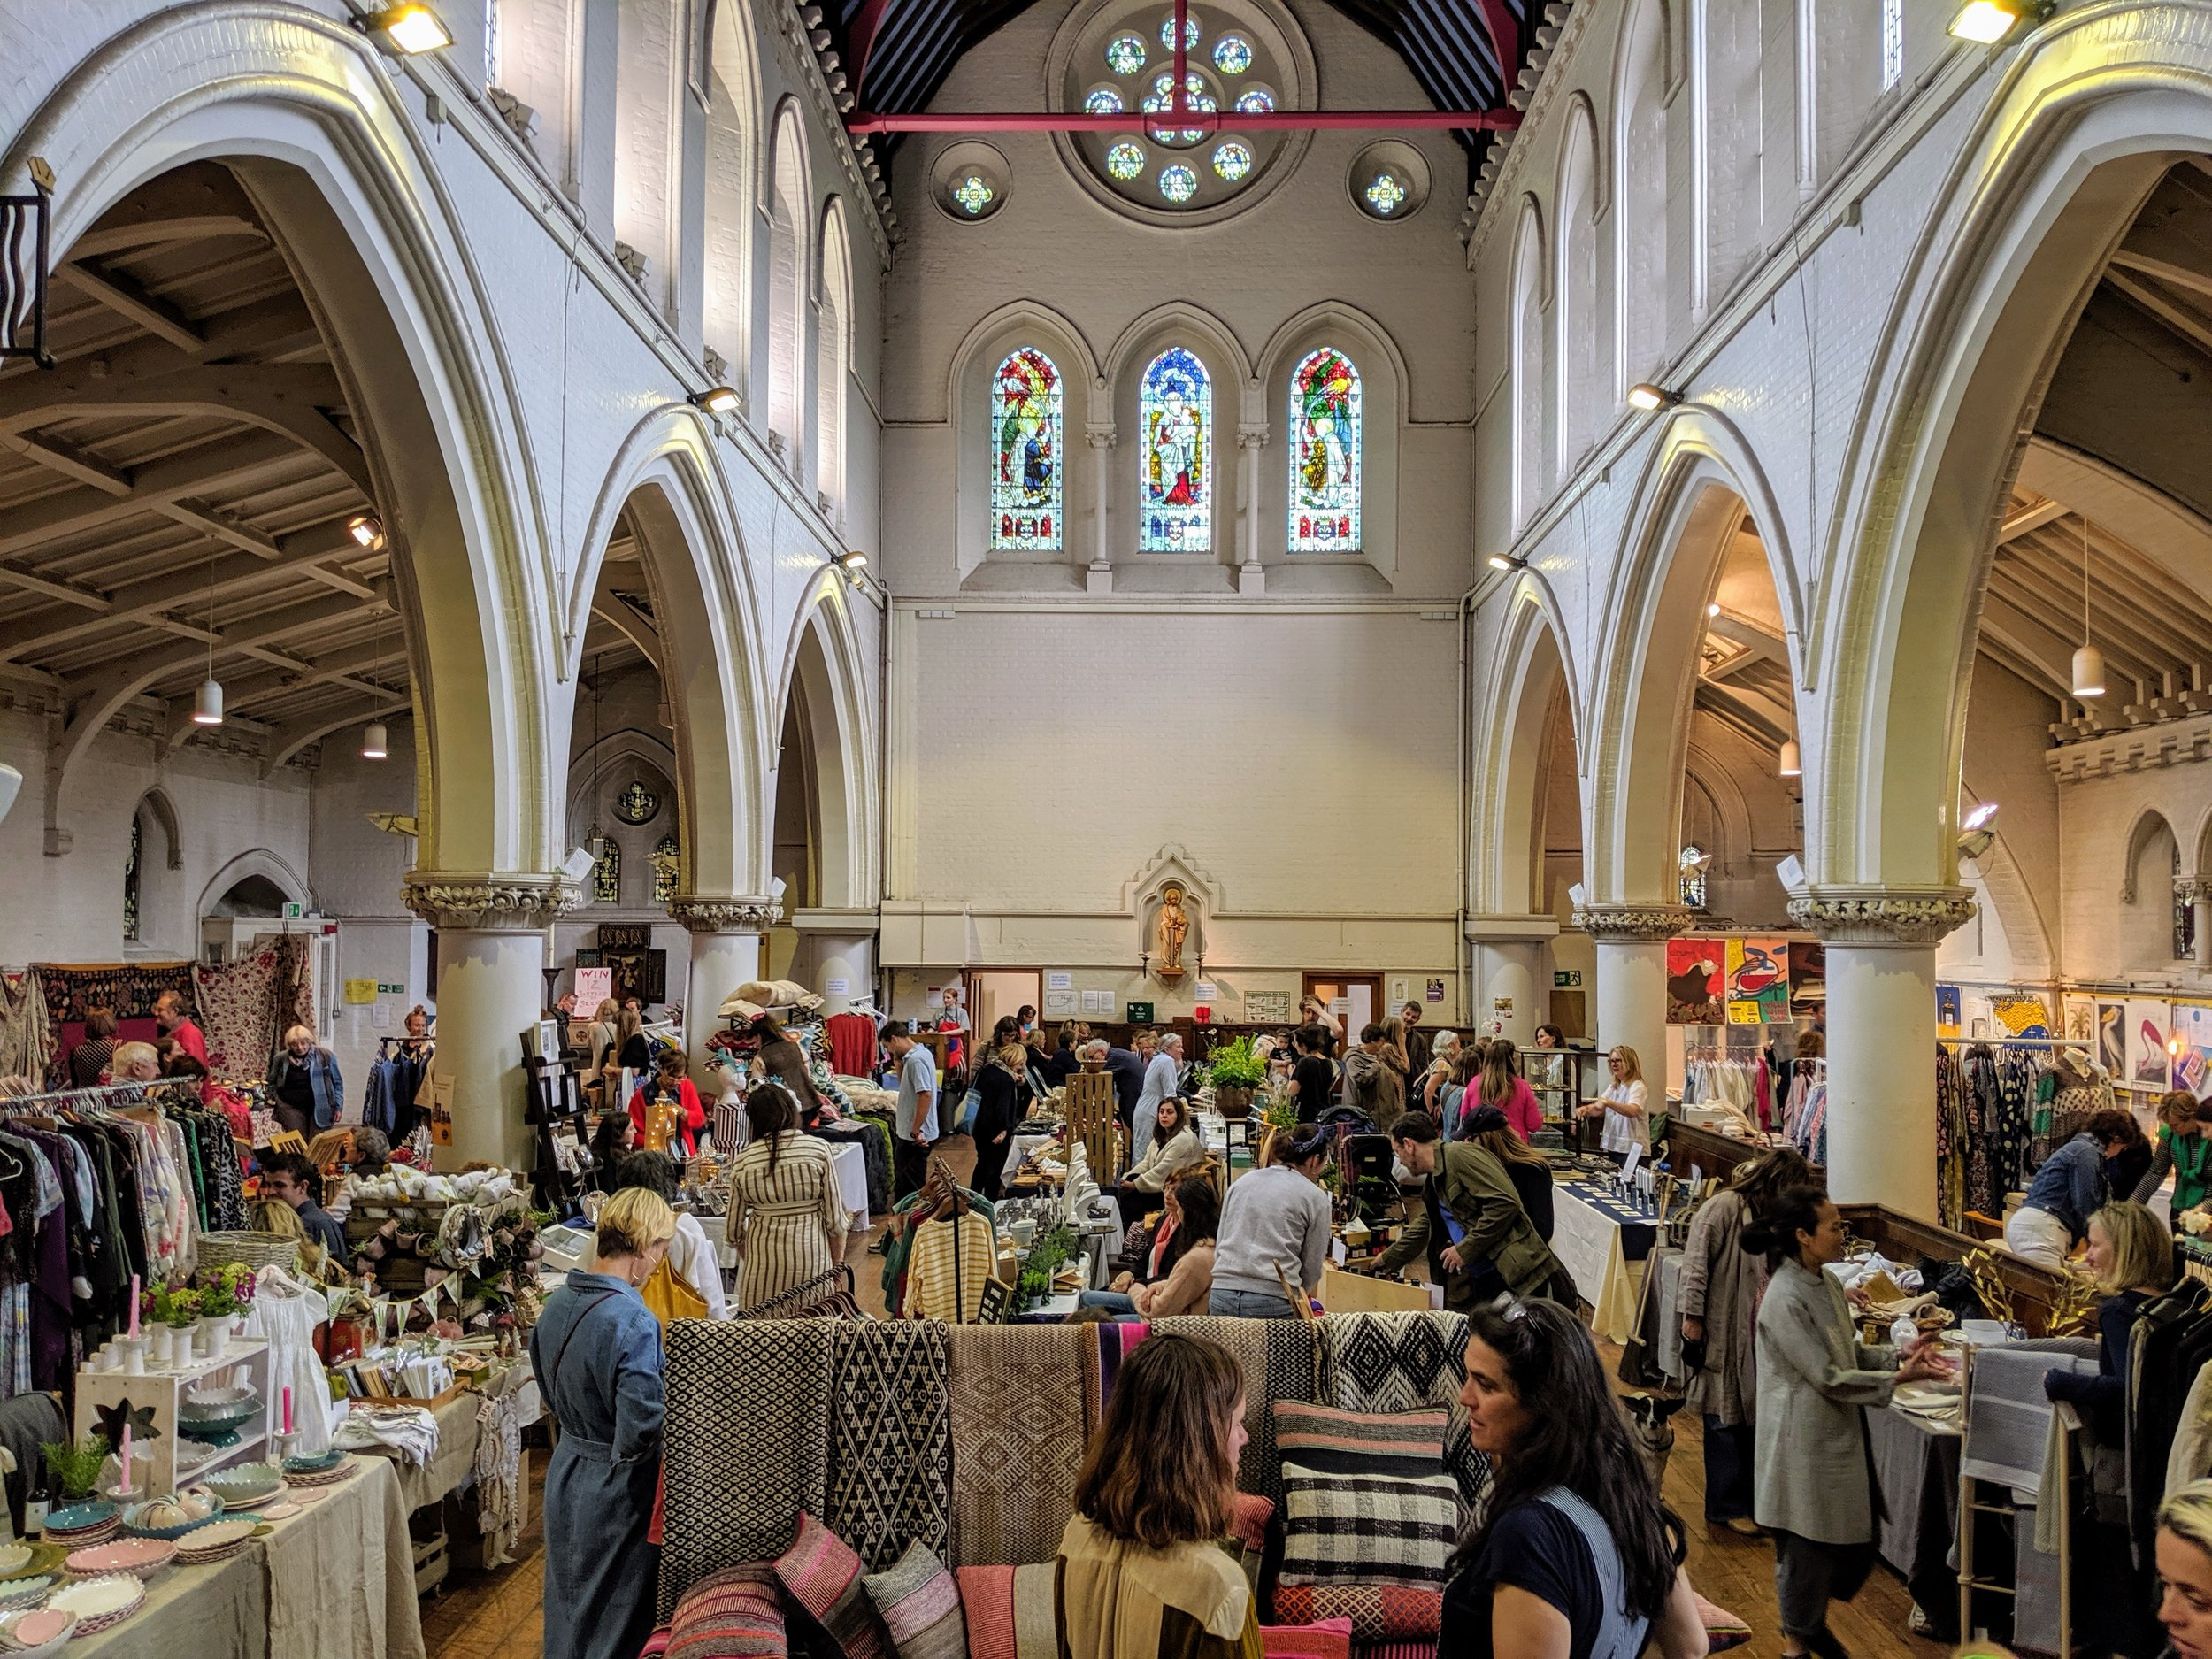 Primrose HillDesigner Fair - Spring Edition 15.06.2019 / December 2019This is the ever popular annual event at St Mary's, where you can come along to browse a great selection of quality fashion and gift items. Grab a last min gifts for christmas or just treat yourself! We also set up a fantastic cafe where you can have lunch, cake, hot drinks and even a glass of mulled wine.